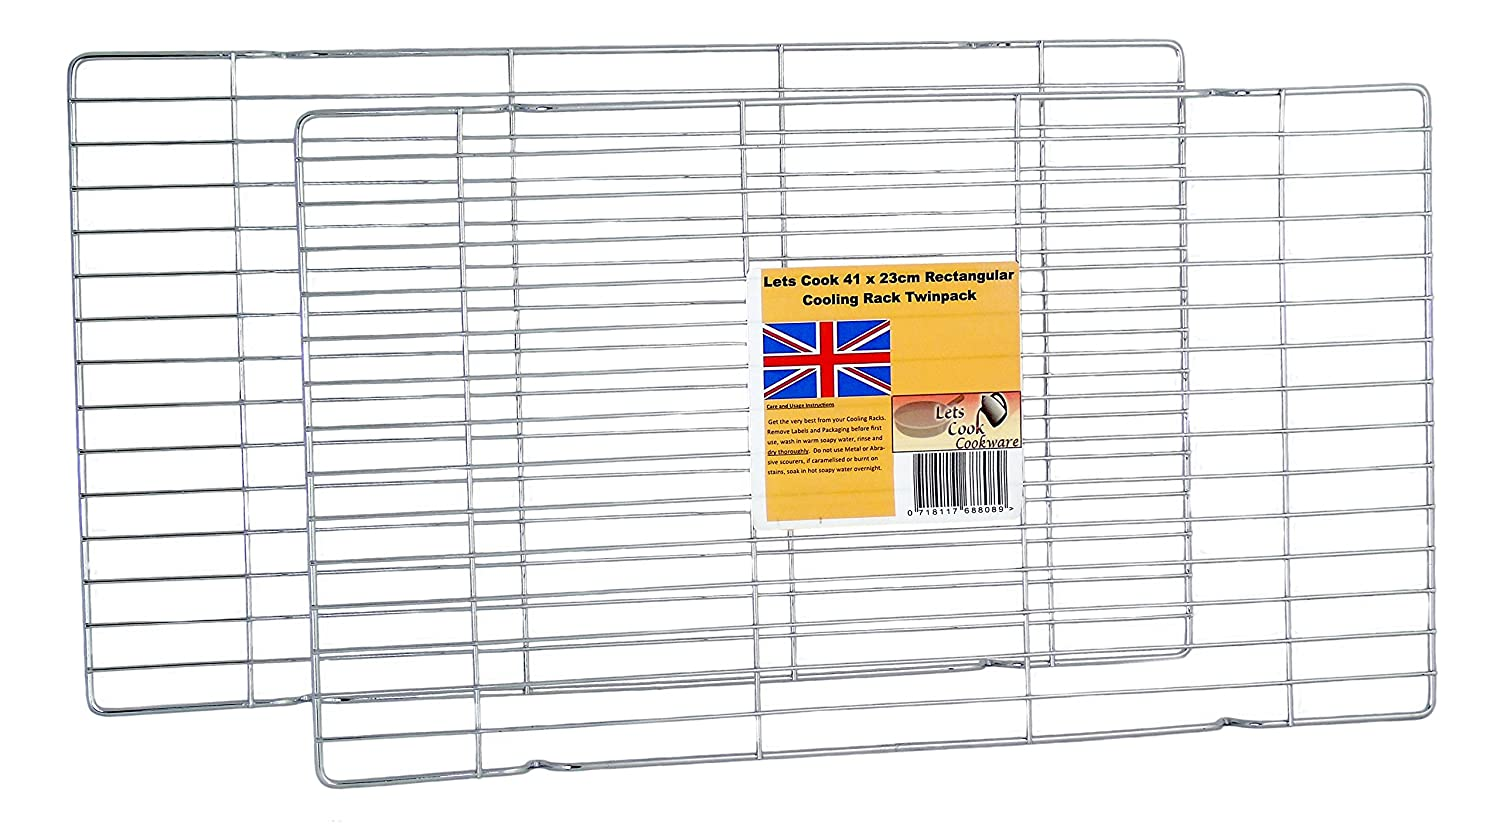 41 x 23cm Rectangular Cooling Rack Twin Pack by Lets Cook Cookware